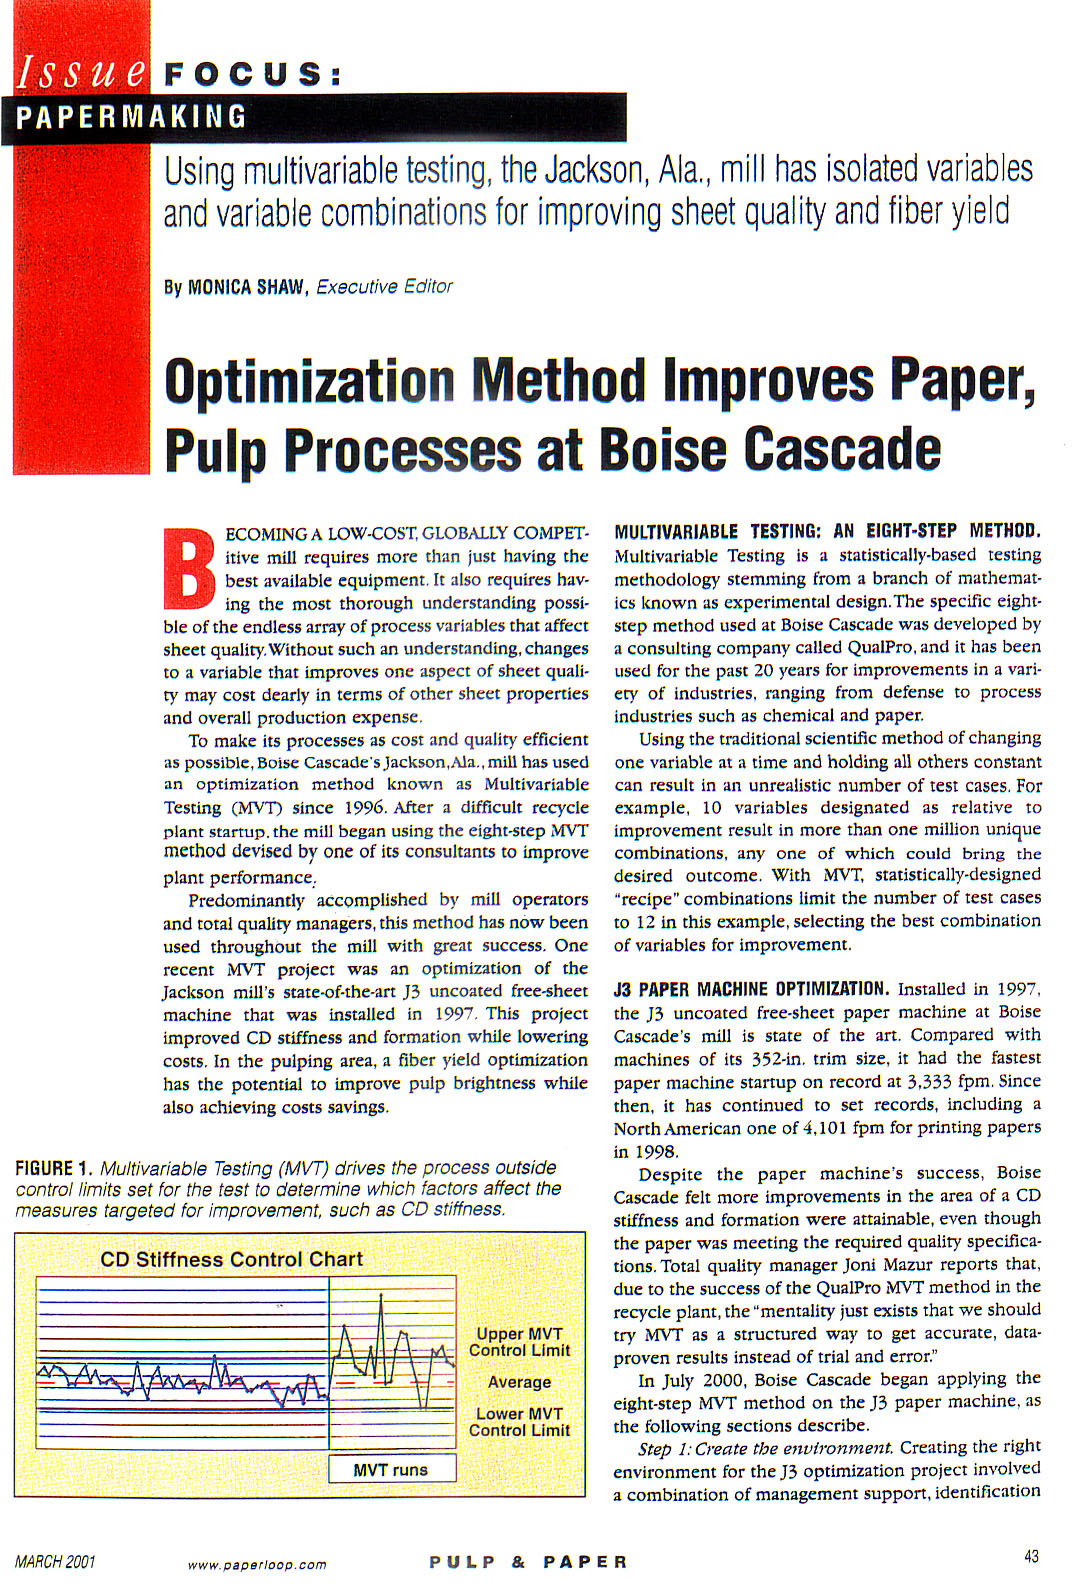 pulp & paper-march 2001-optimization method improves paper, pulp processes at boise cascade  page 1.jpg